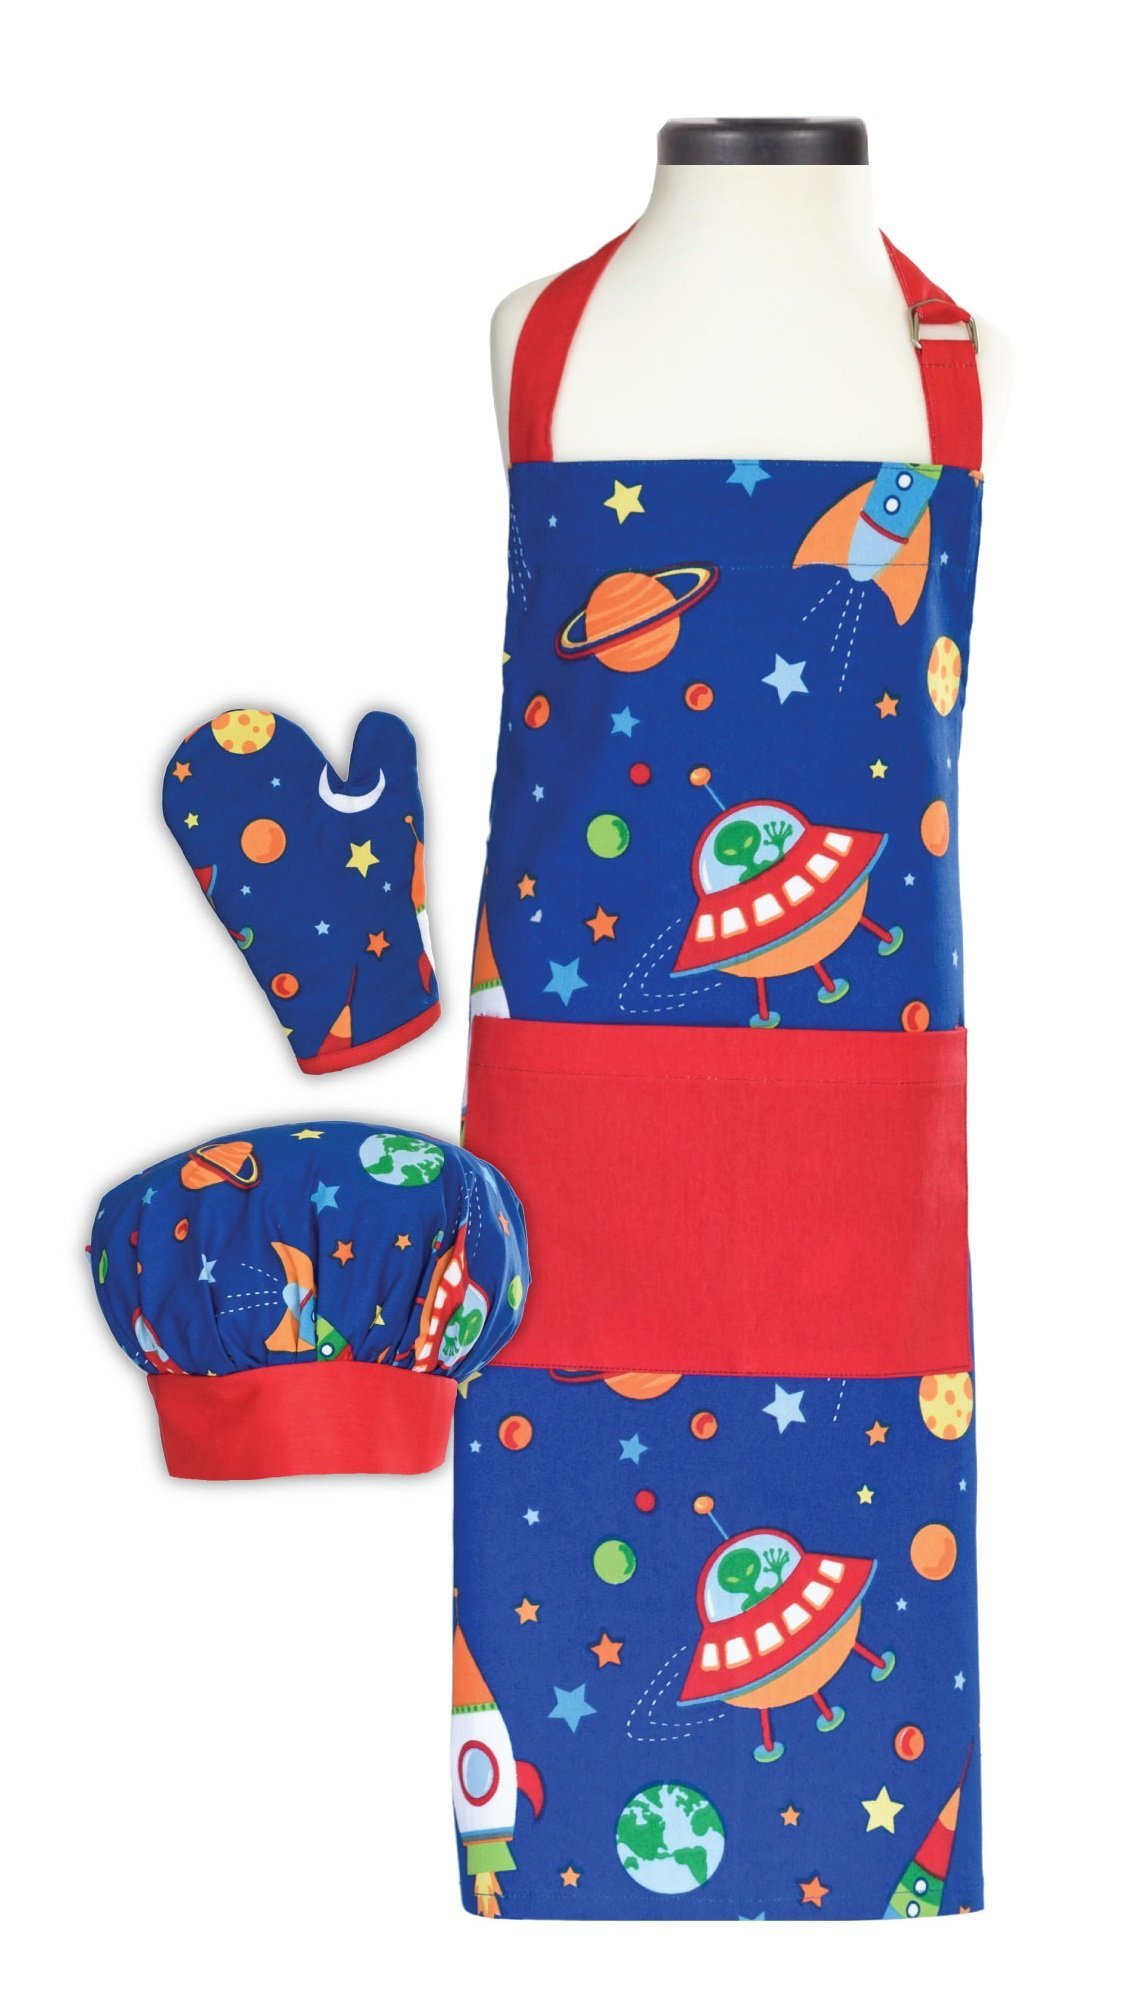 Handstand Kitchen Child's Out of this World 100% Cotton Apron, Mitt and Chef's Hat Gift Set